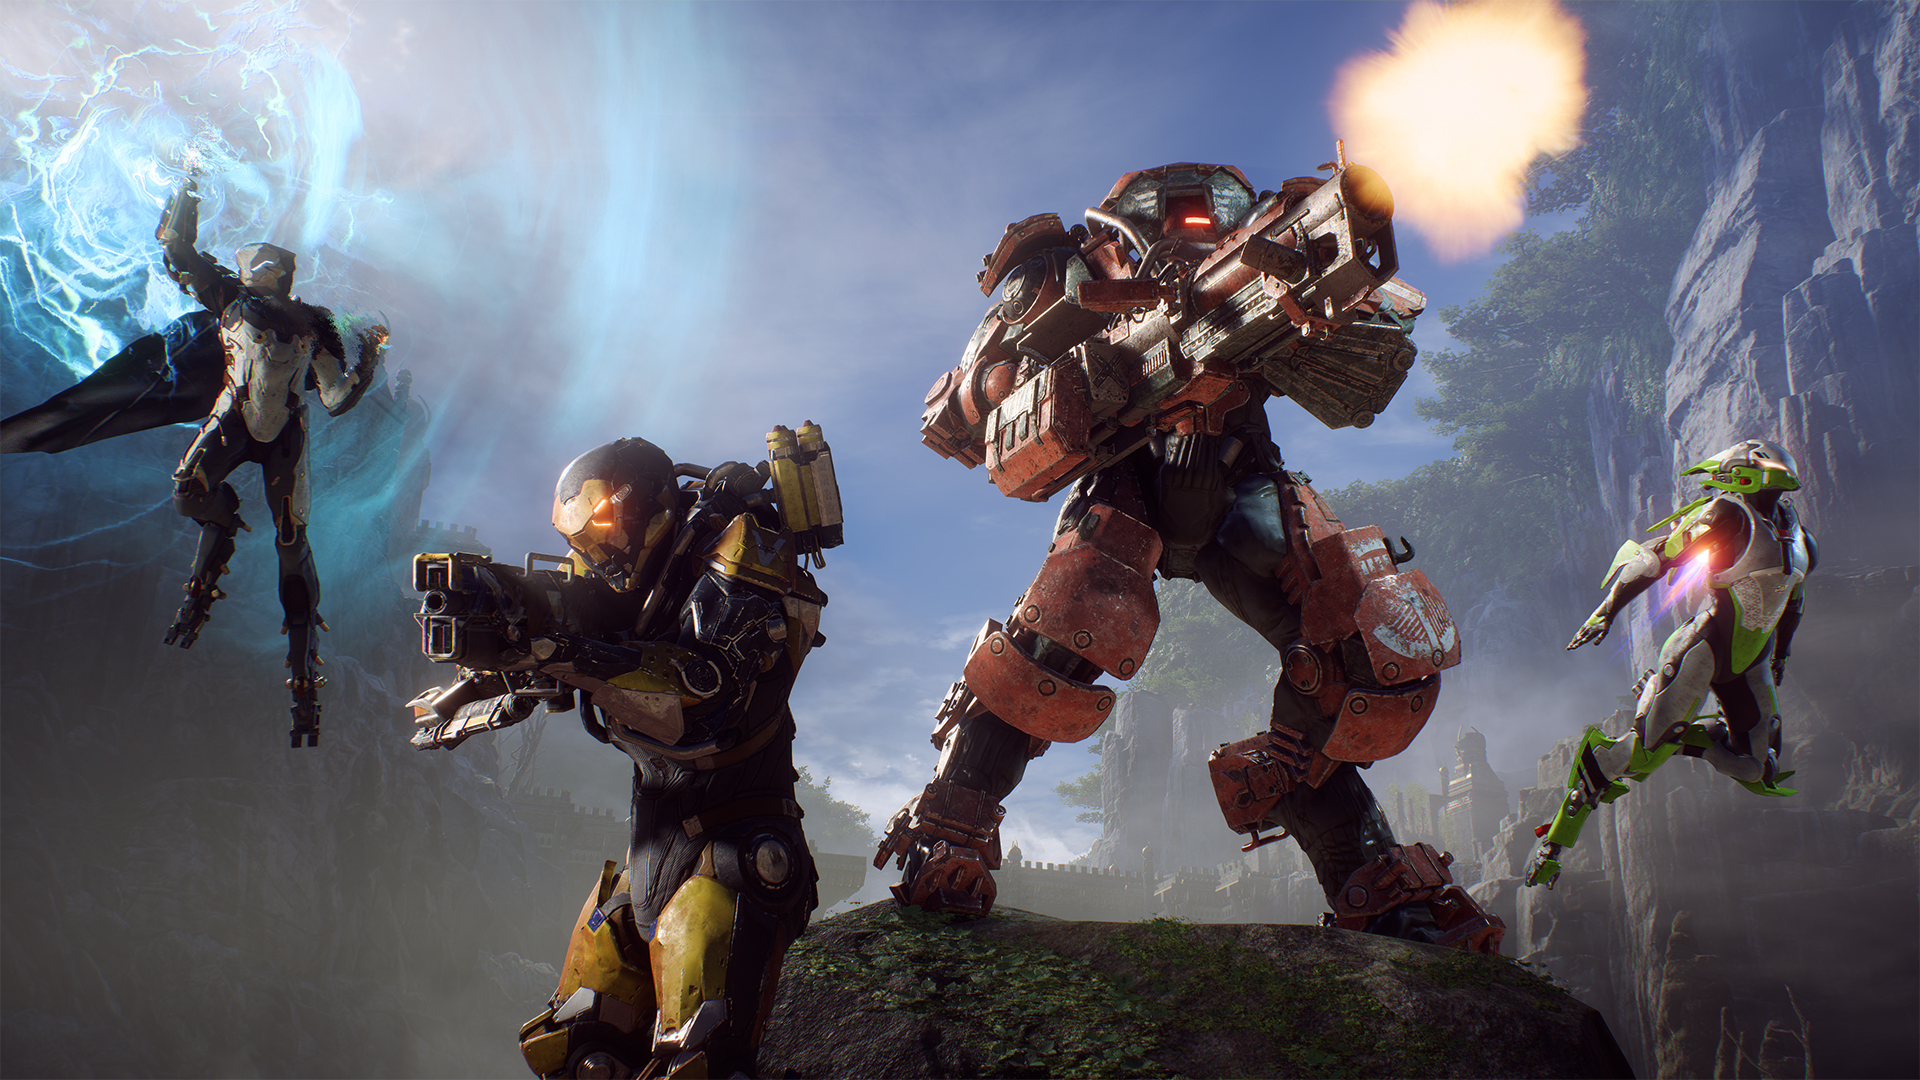 3840x2400 Anthem 2019 Hd 4k HD 4k Wallpapers, Images ...